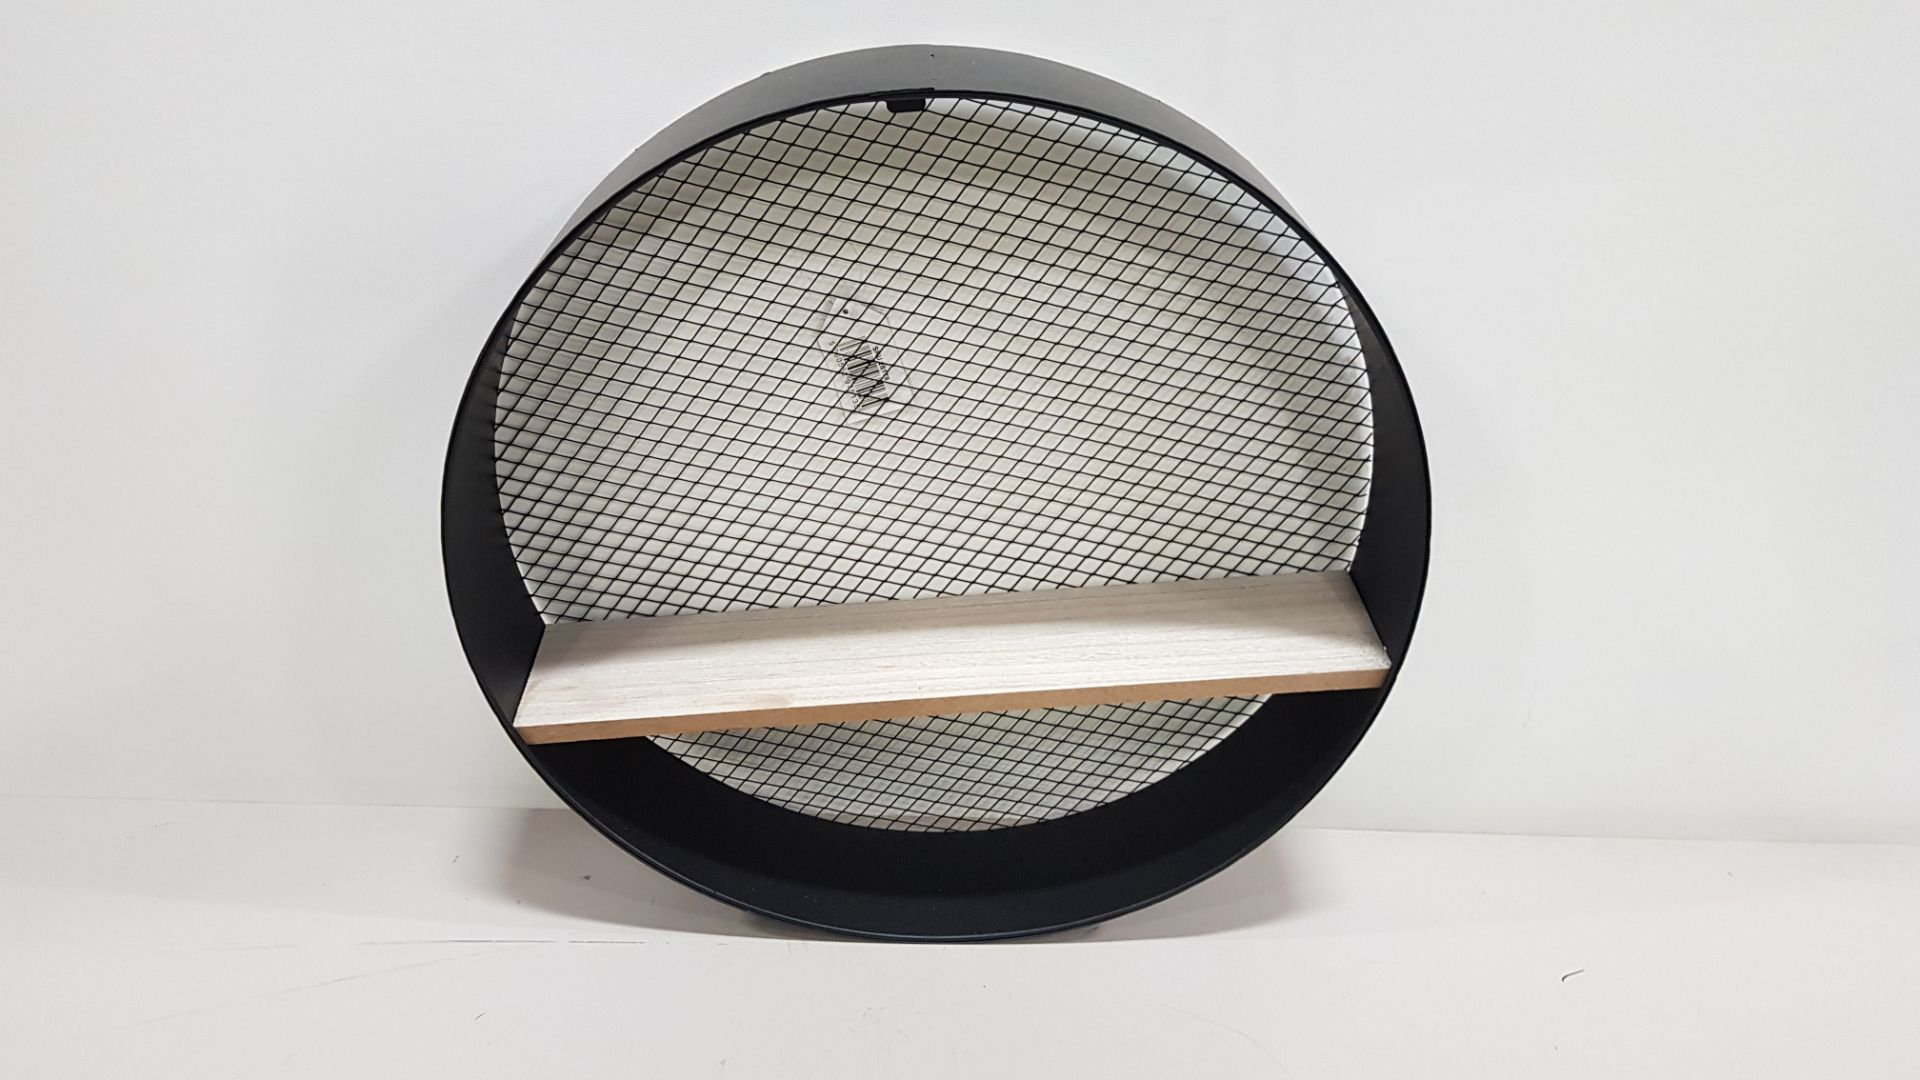 24 X BRAND NEW ROUND MESH INDUSTRIAL STYLED SHELF